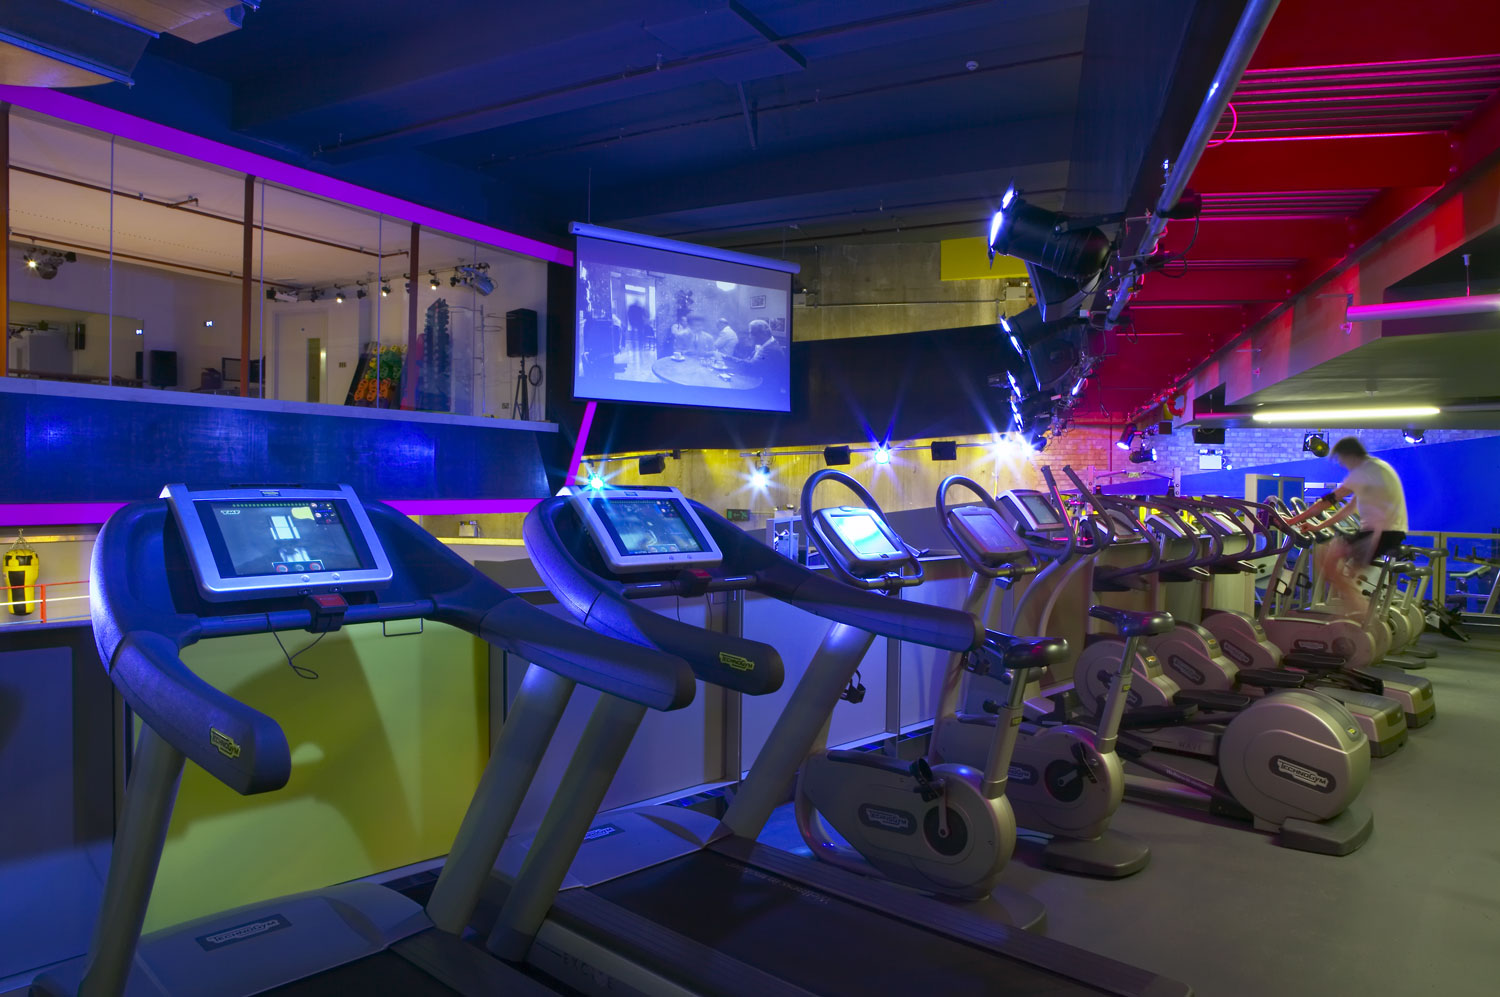 Gymbox Covent Garden, London spinning area | Photographer Interiors | Commercial Professional Photographer